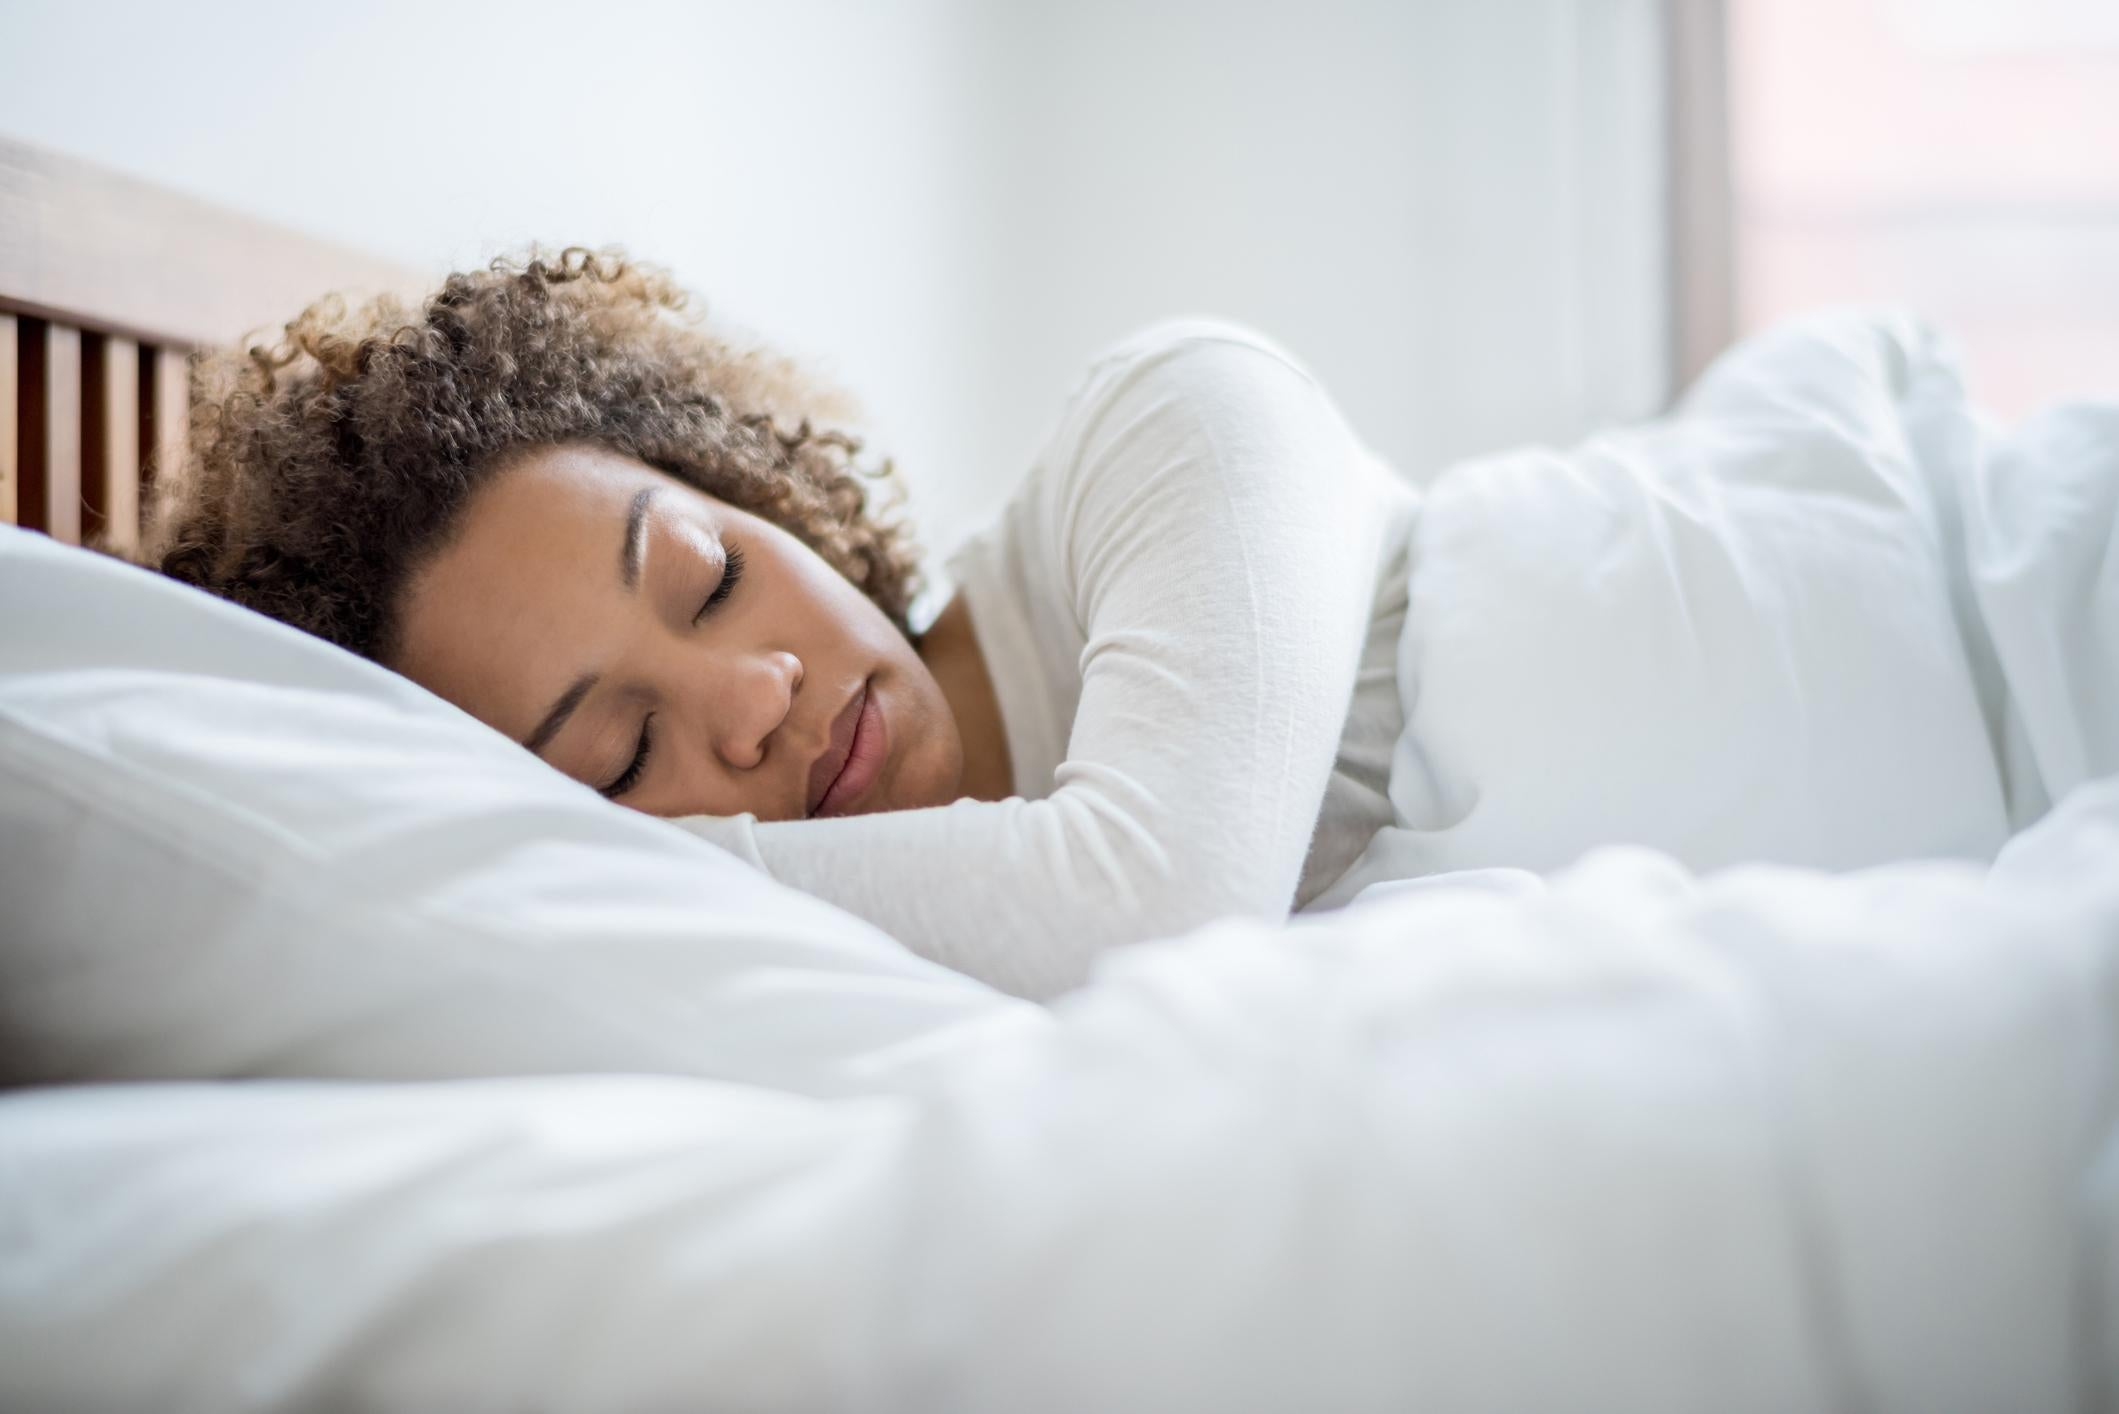 How To Clean A Mattress And Remove Stubborn Stains The Independent